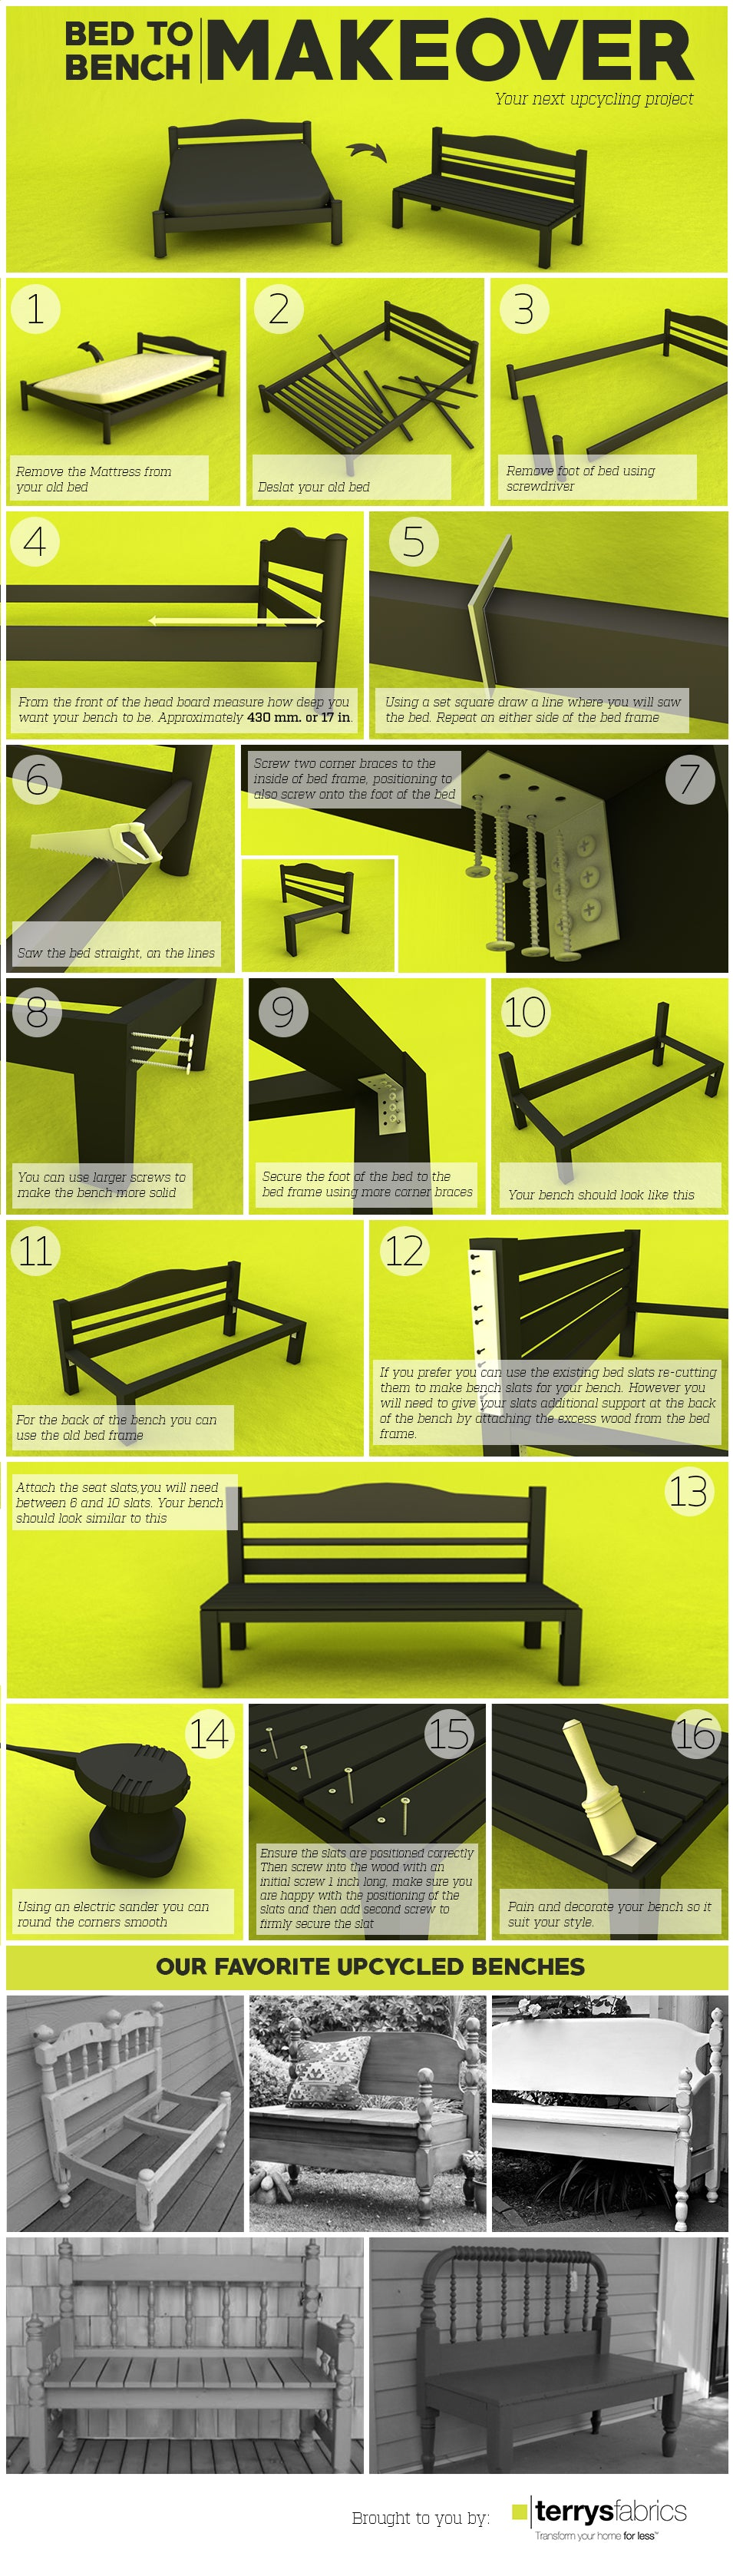 Bed To Bench Infographic